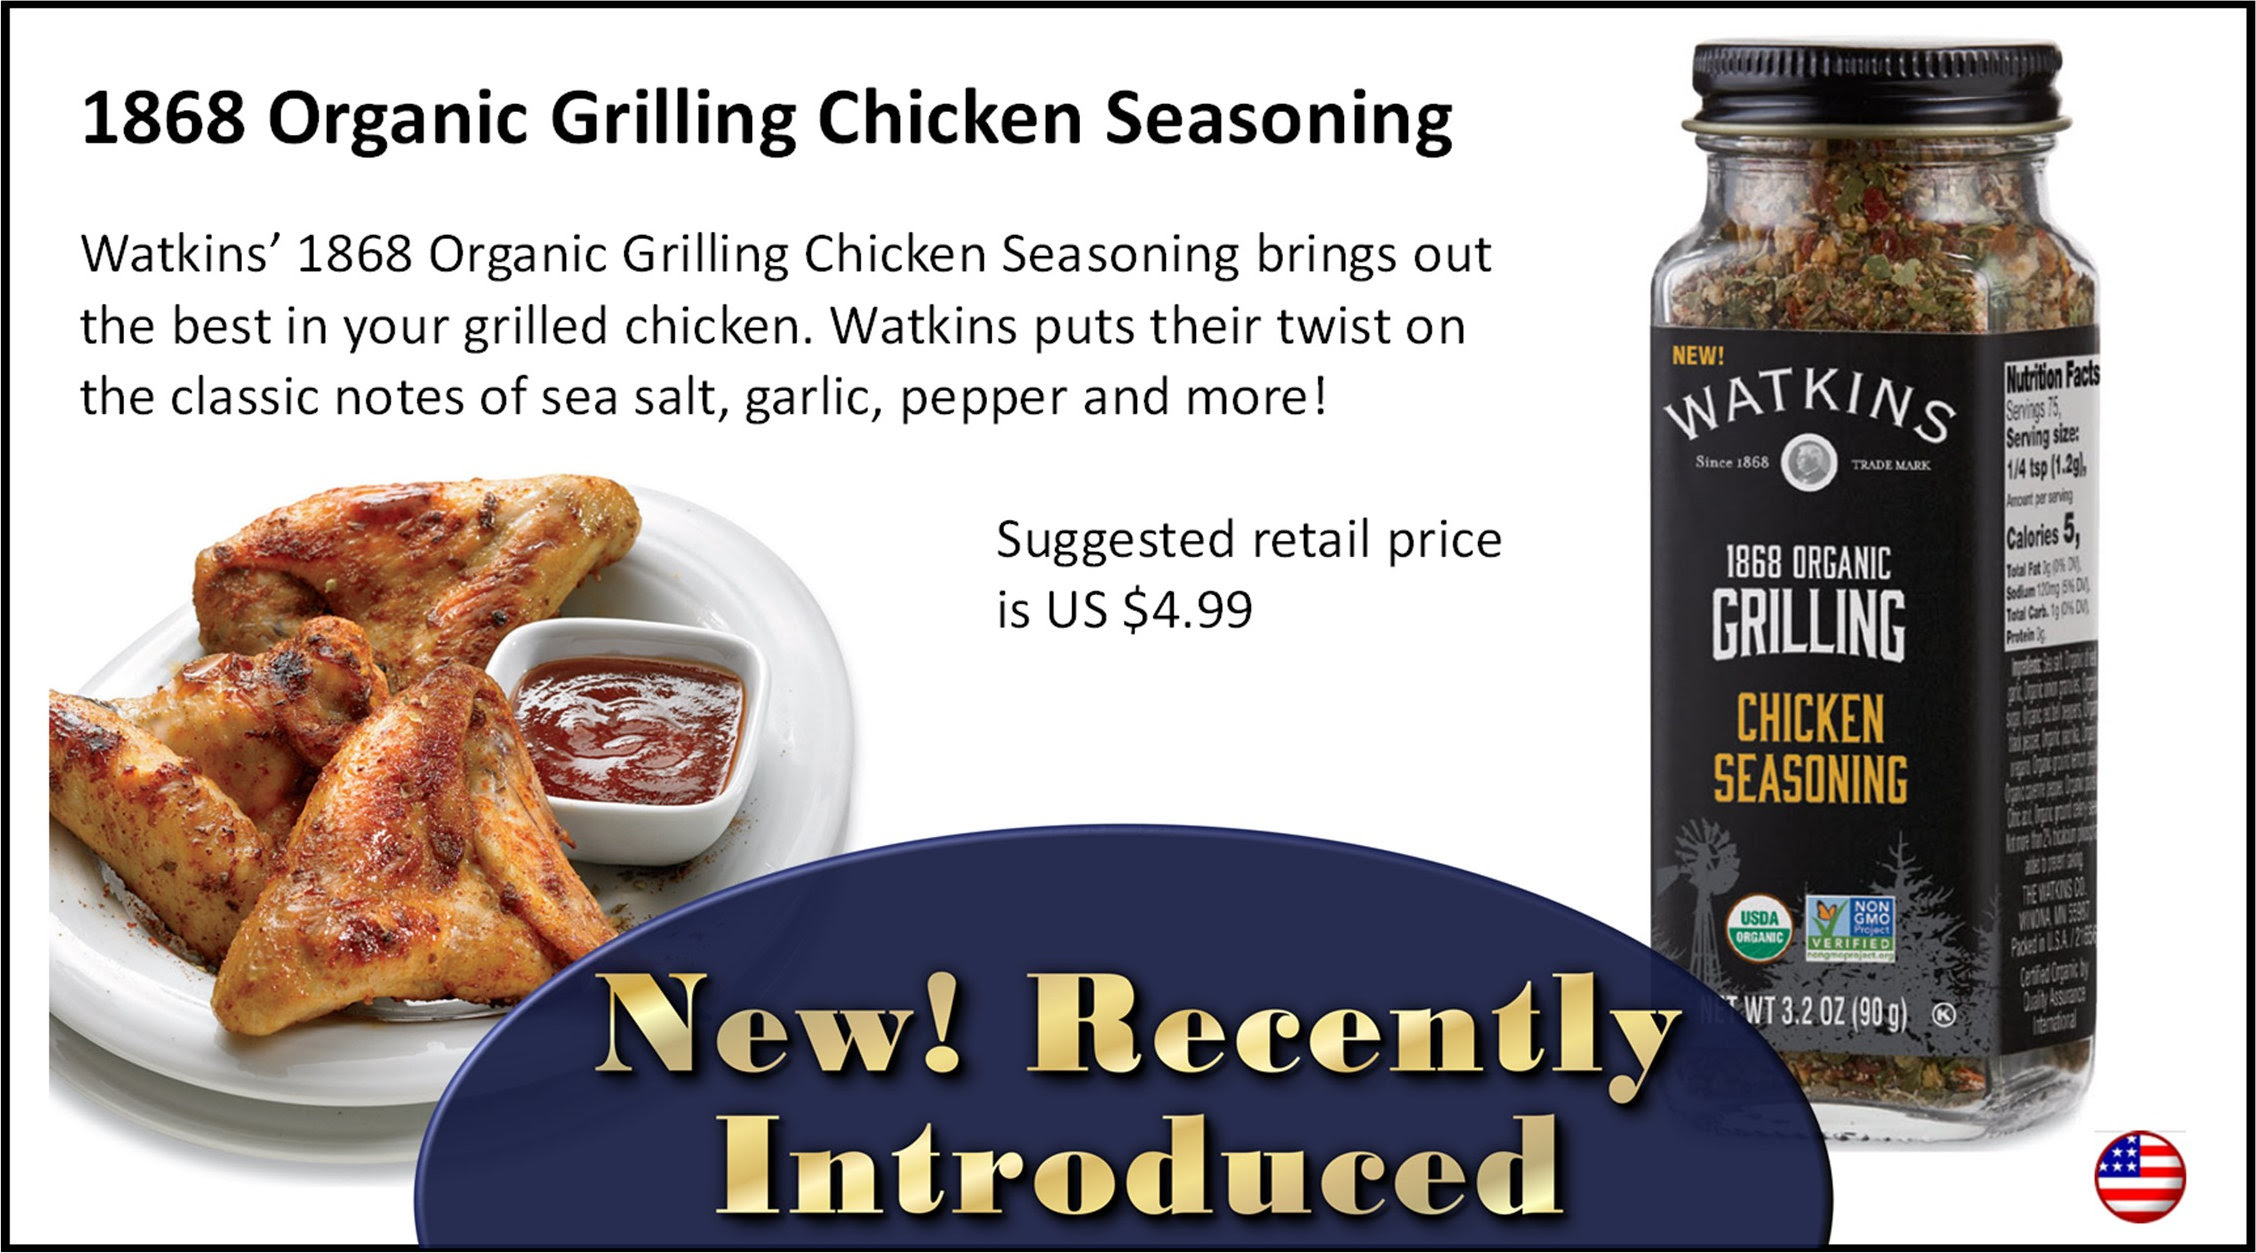 Watkins Grilling Chicken Seasoning